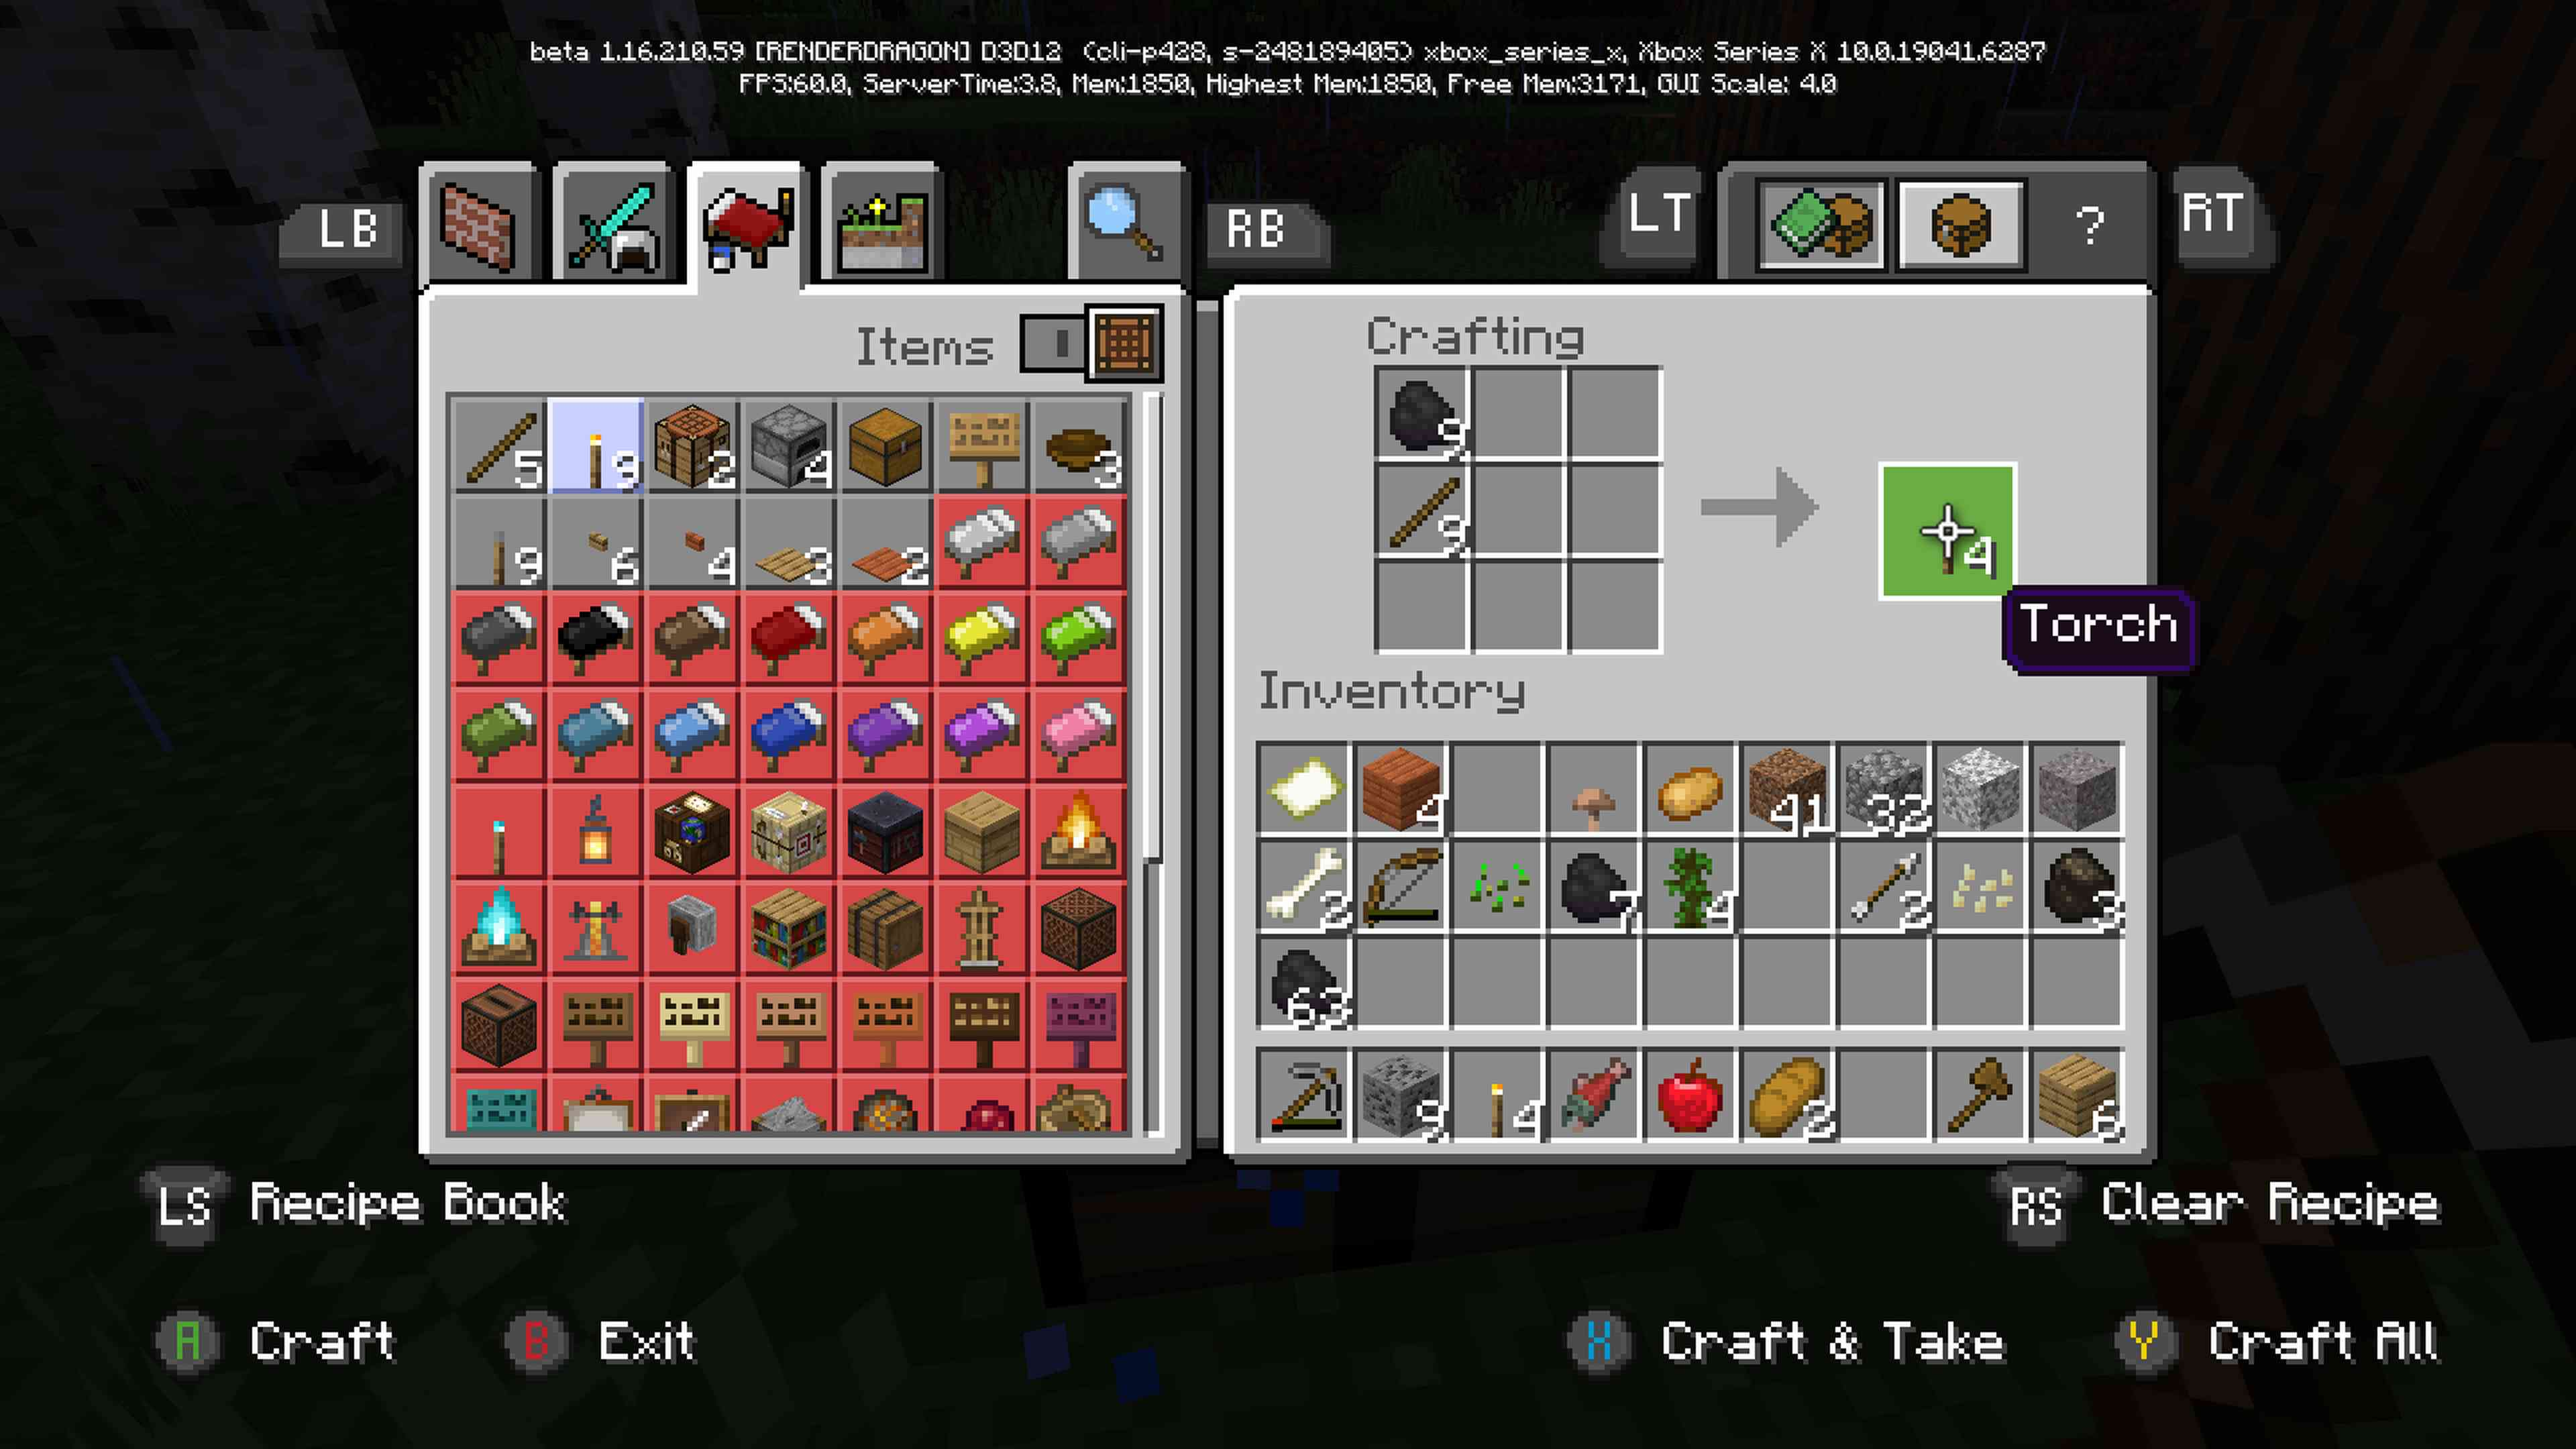 Minecraft Recipe Book with a Torch recipe selected and highlighted